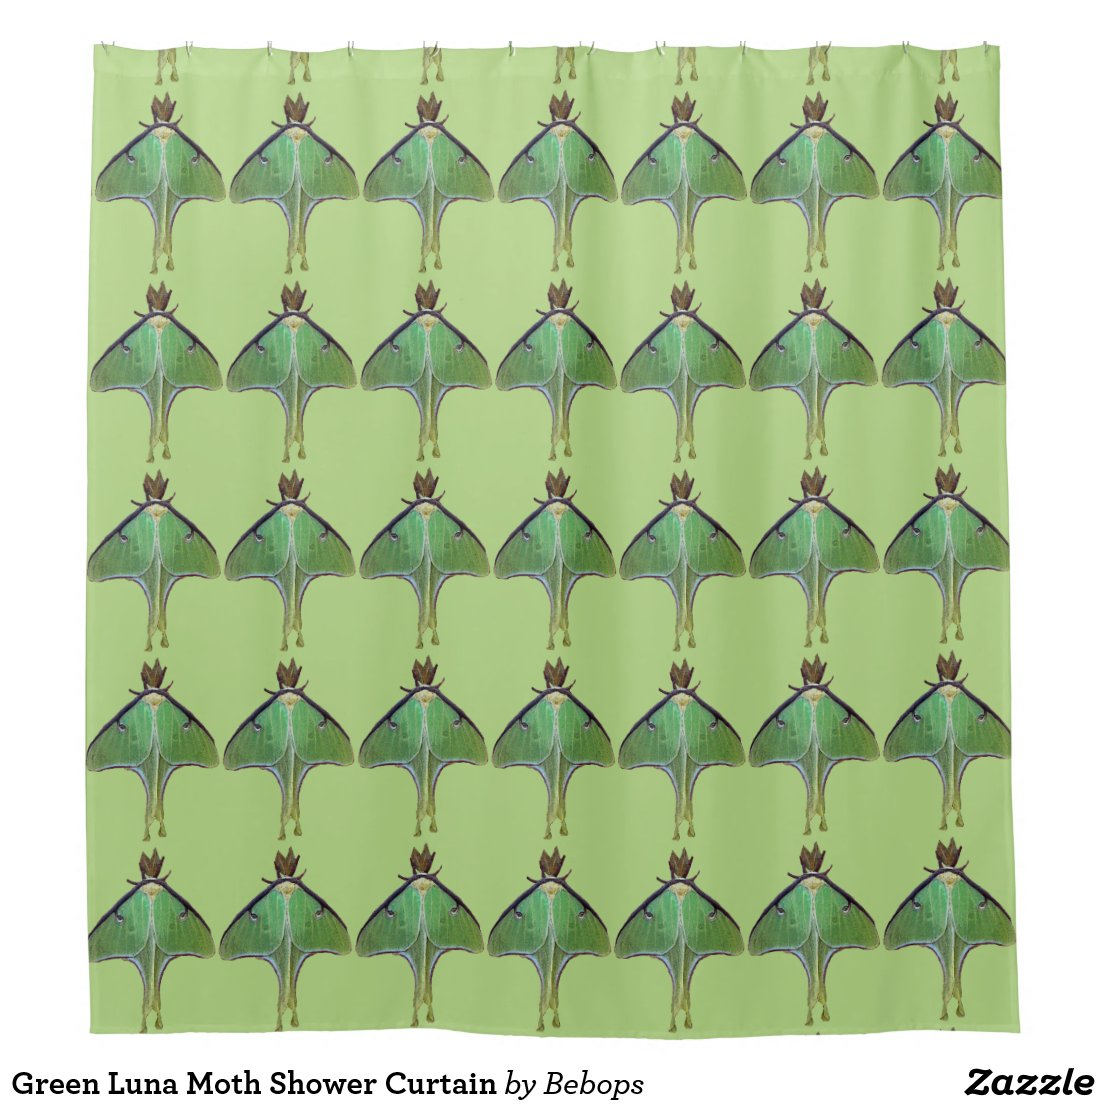 Green Luna Moth Shower Curtain